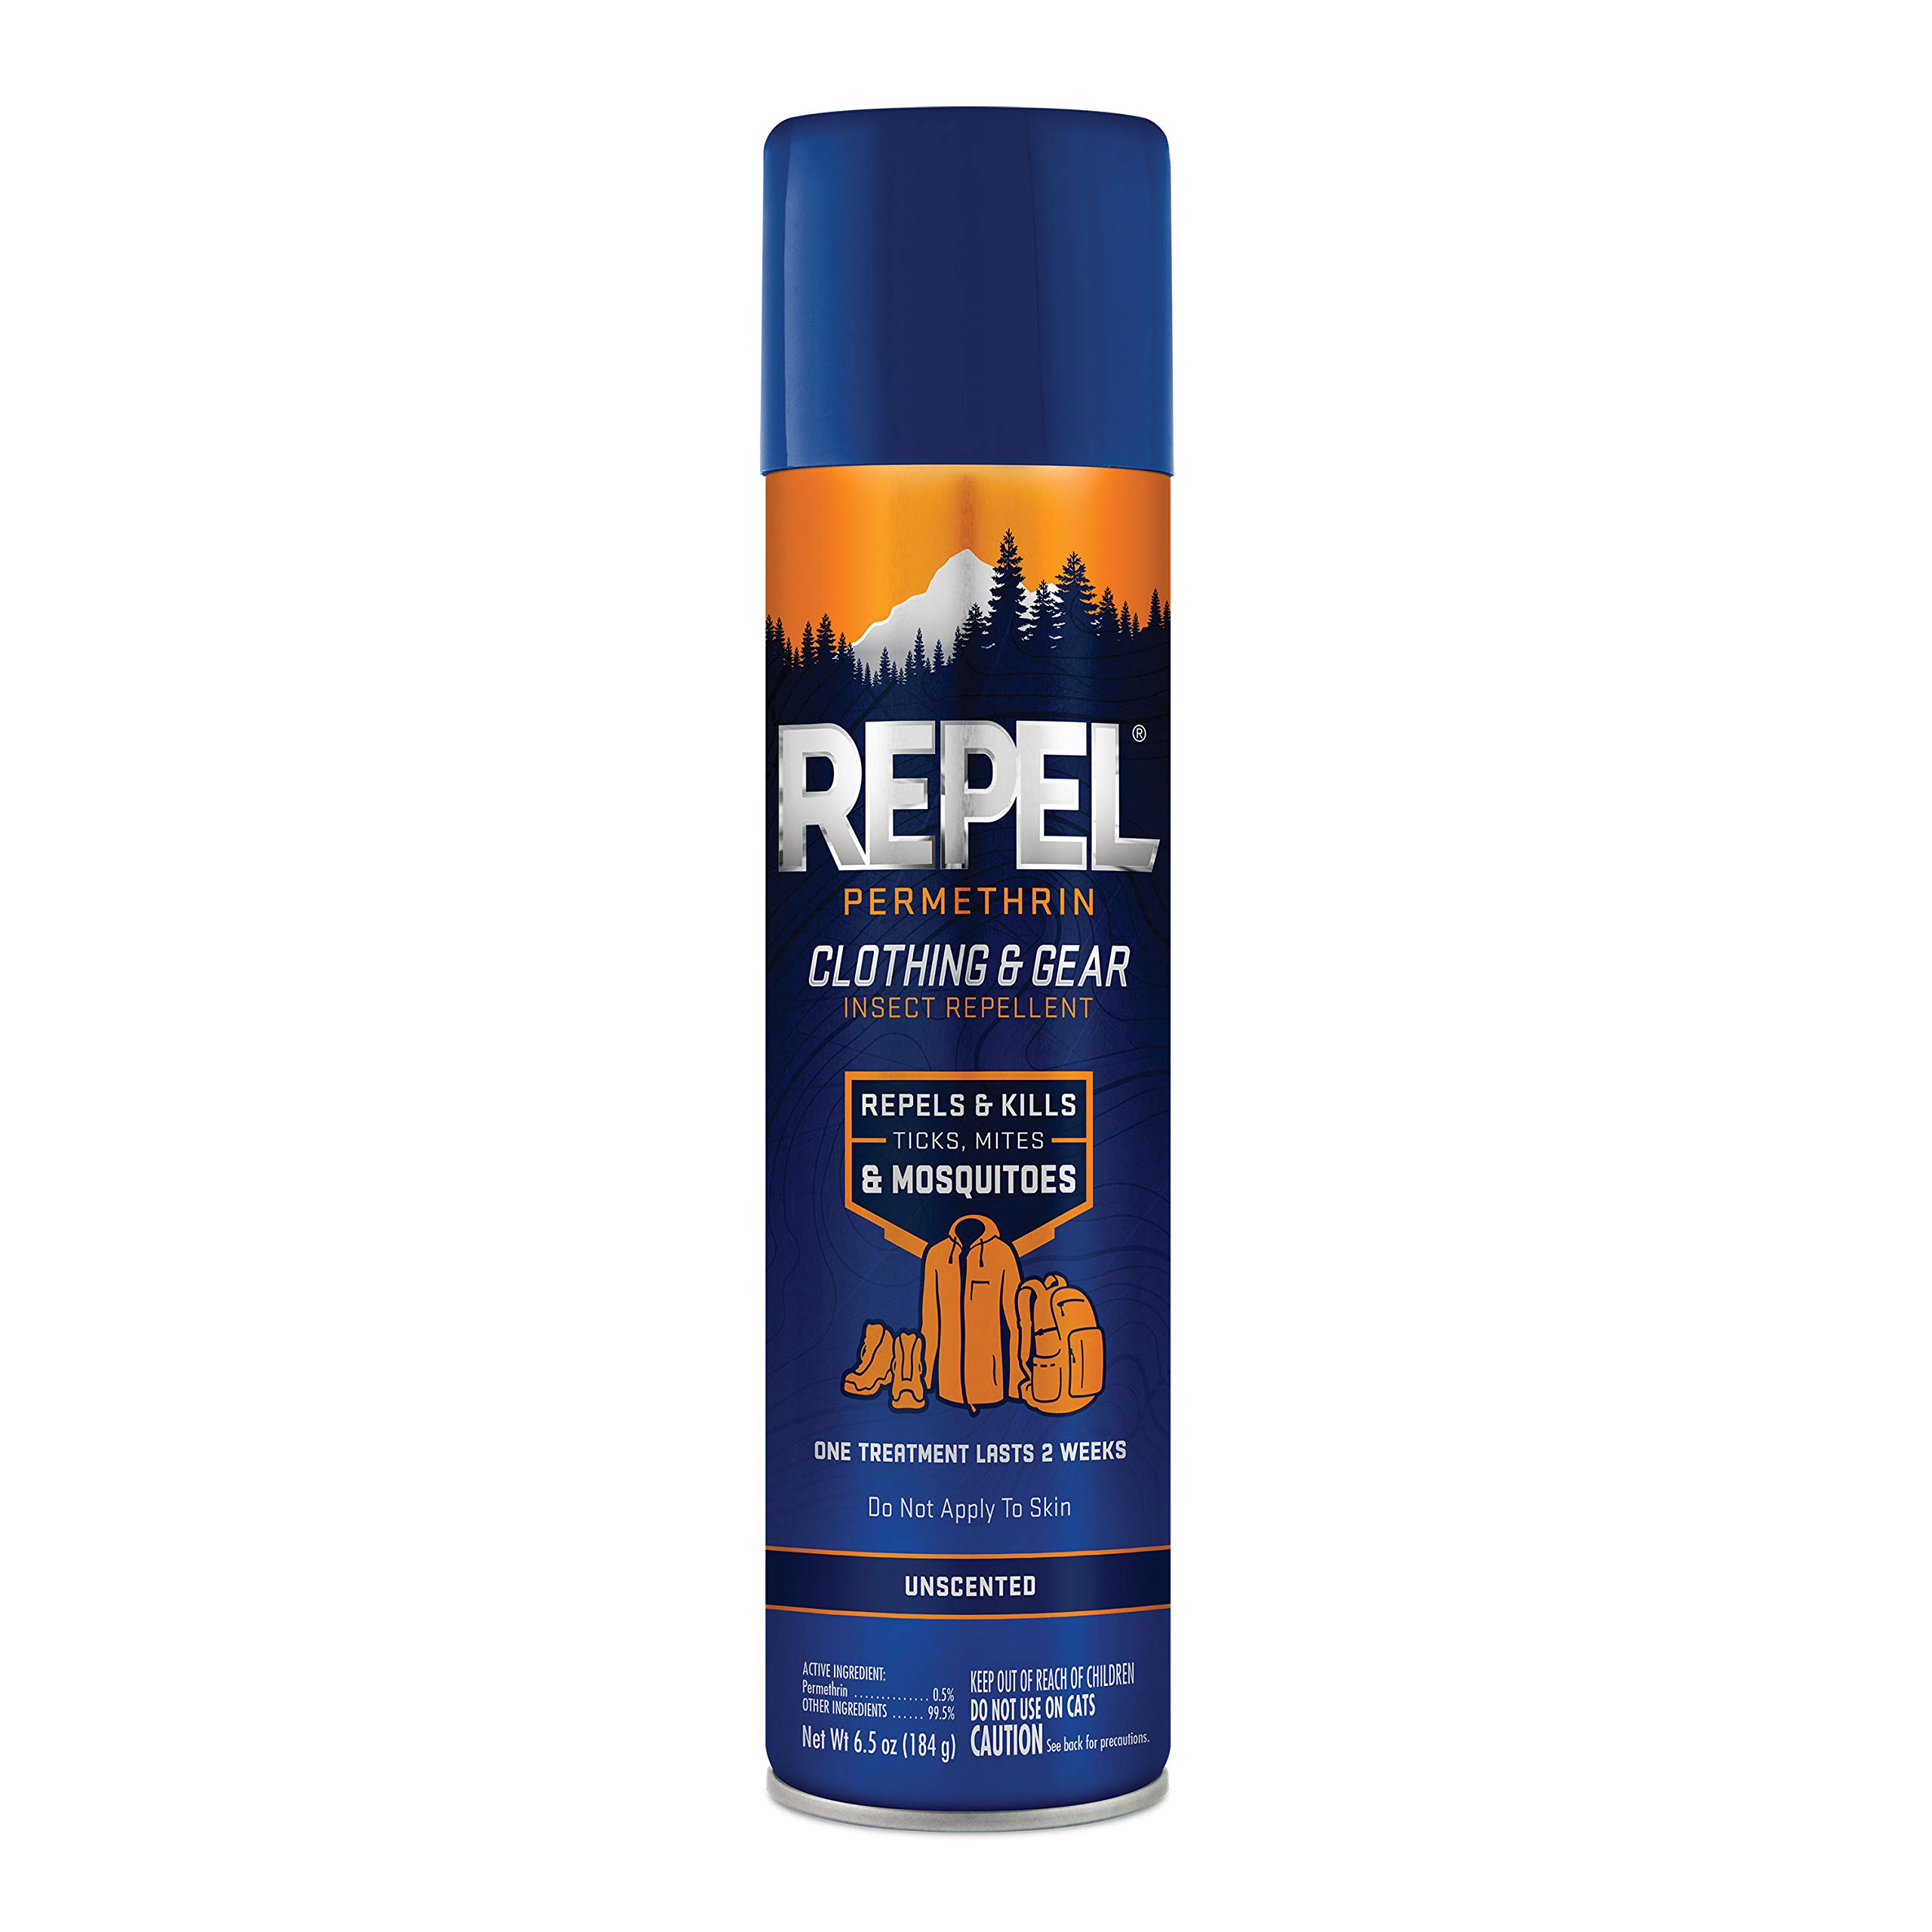 Repel Permethrin Clothing & Gear Insect Repellent, Aerosol, 6.5-Ounce, 6-Pack by Repel